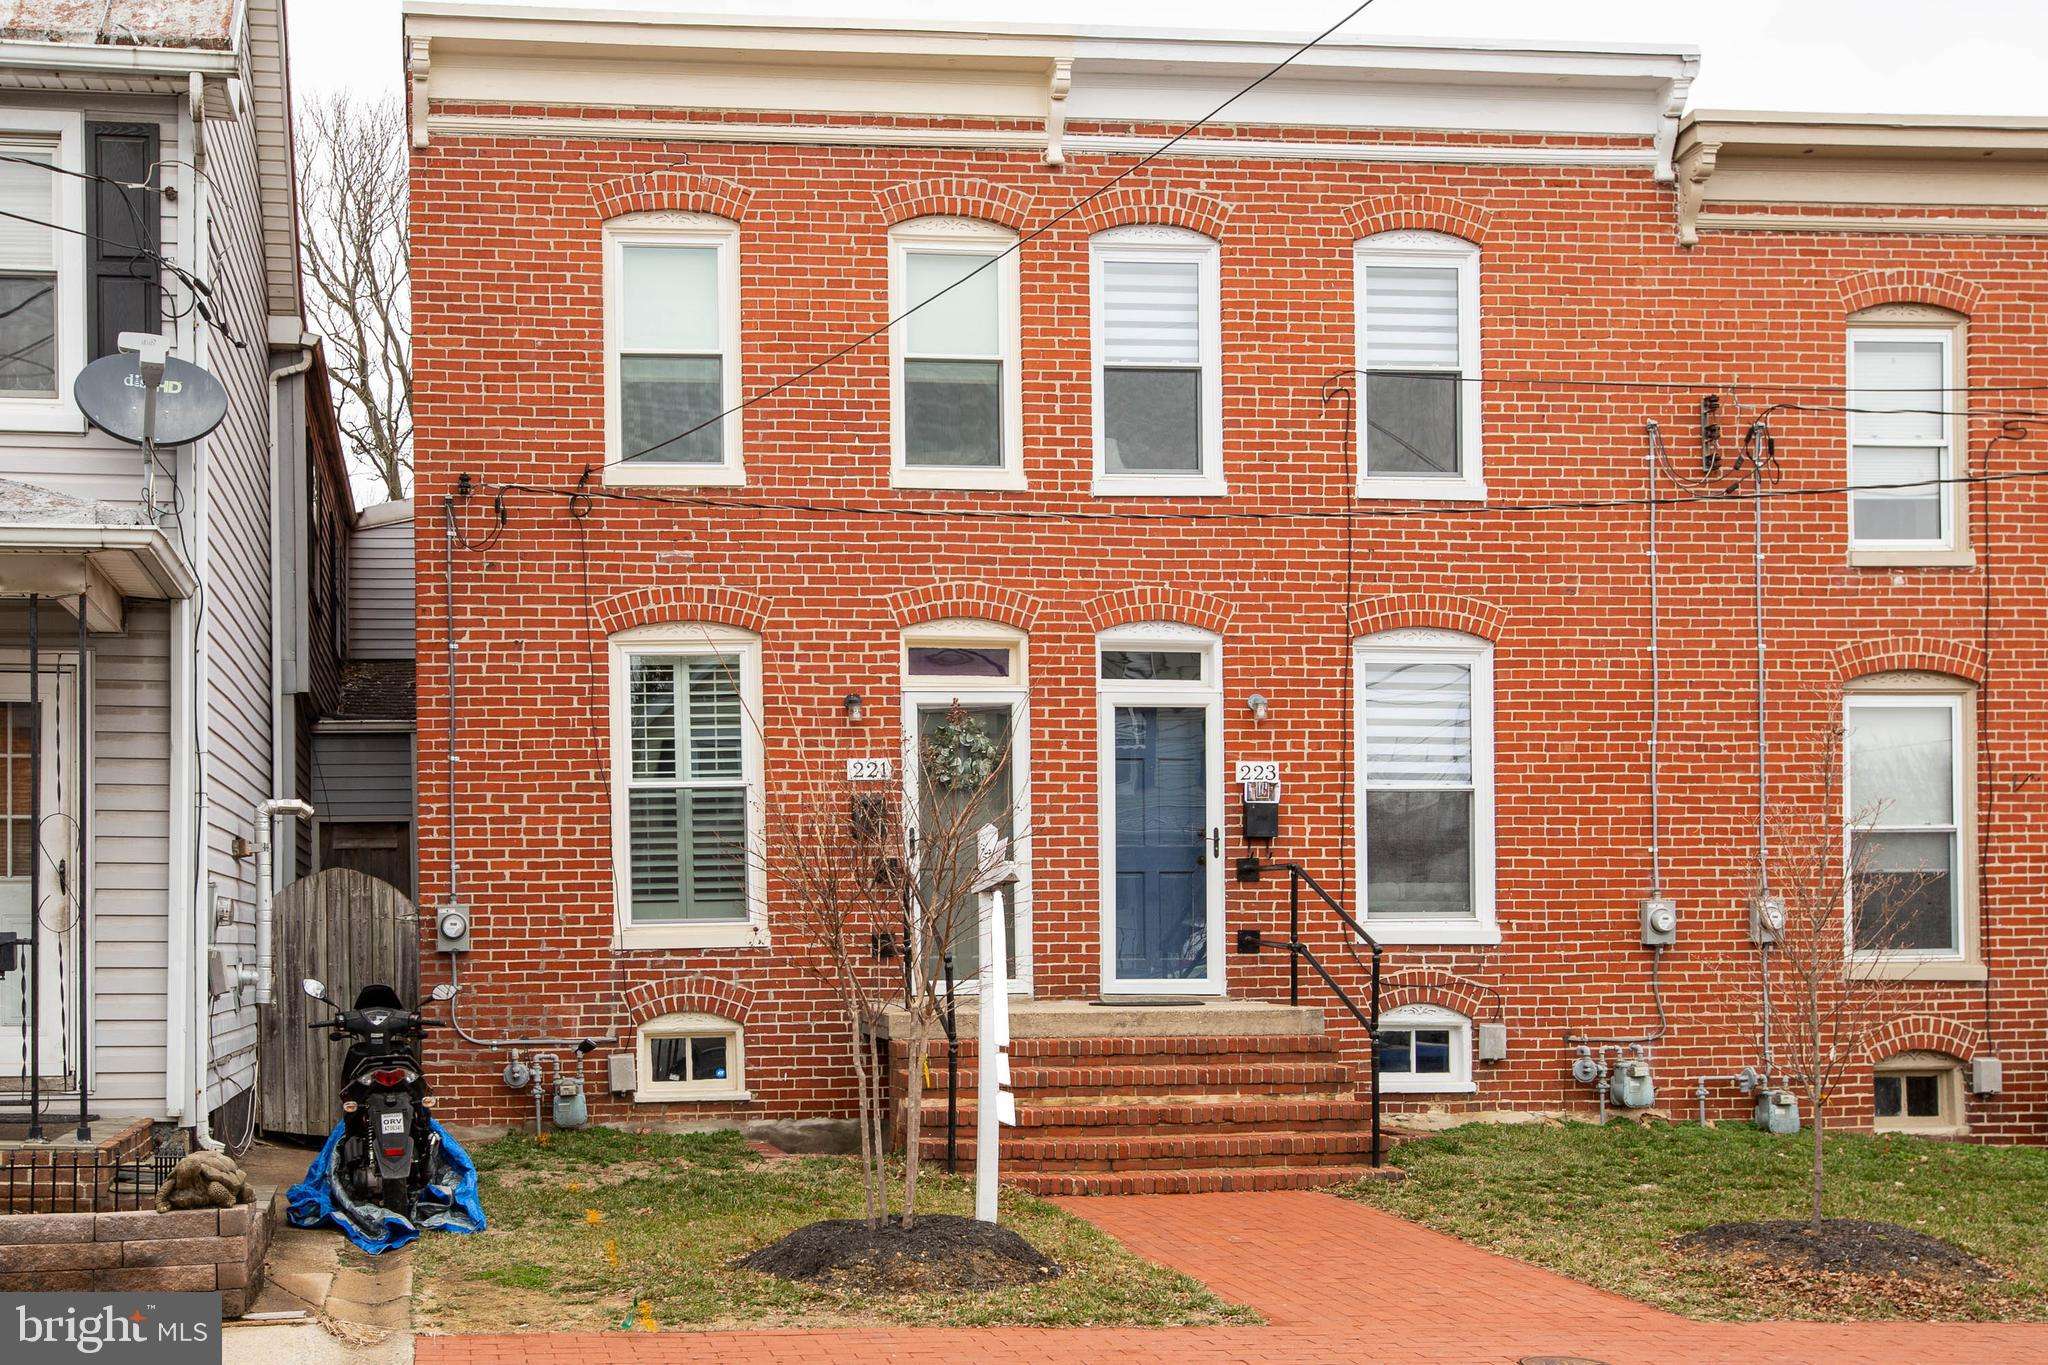 What a cutie! All Brick and completely renovated in 2019 ready for you to call home in Frederick City Downtown! Features 2 lovely bedrooms and a full bath, all hard wood floors, beautiful kitchen with style and class, curved stairs to the upper bedrooms and full bath, tucked in to a comfortable and homey floor plan sure to please.  Spacious parking and grassy area awaits you in the back yard for plenty of entertainment room.Home Warranty is in place for this newer renovated home in 2019!